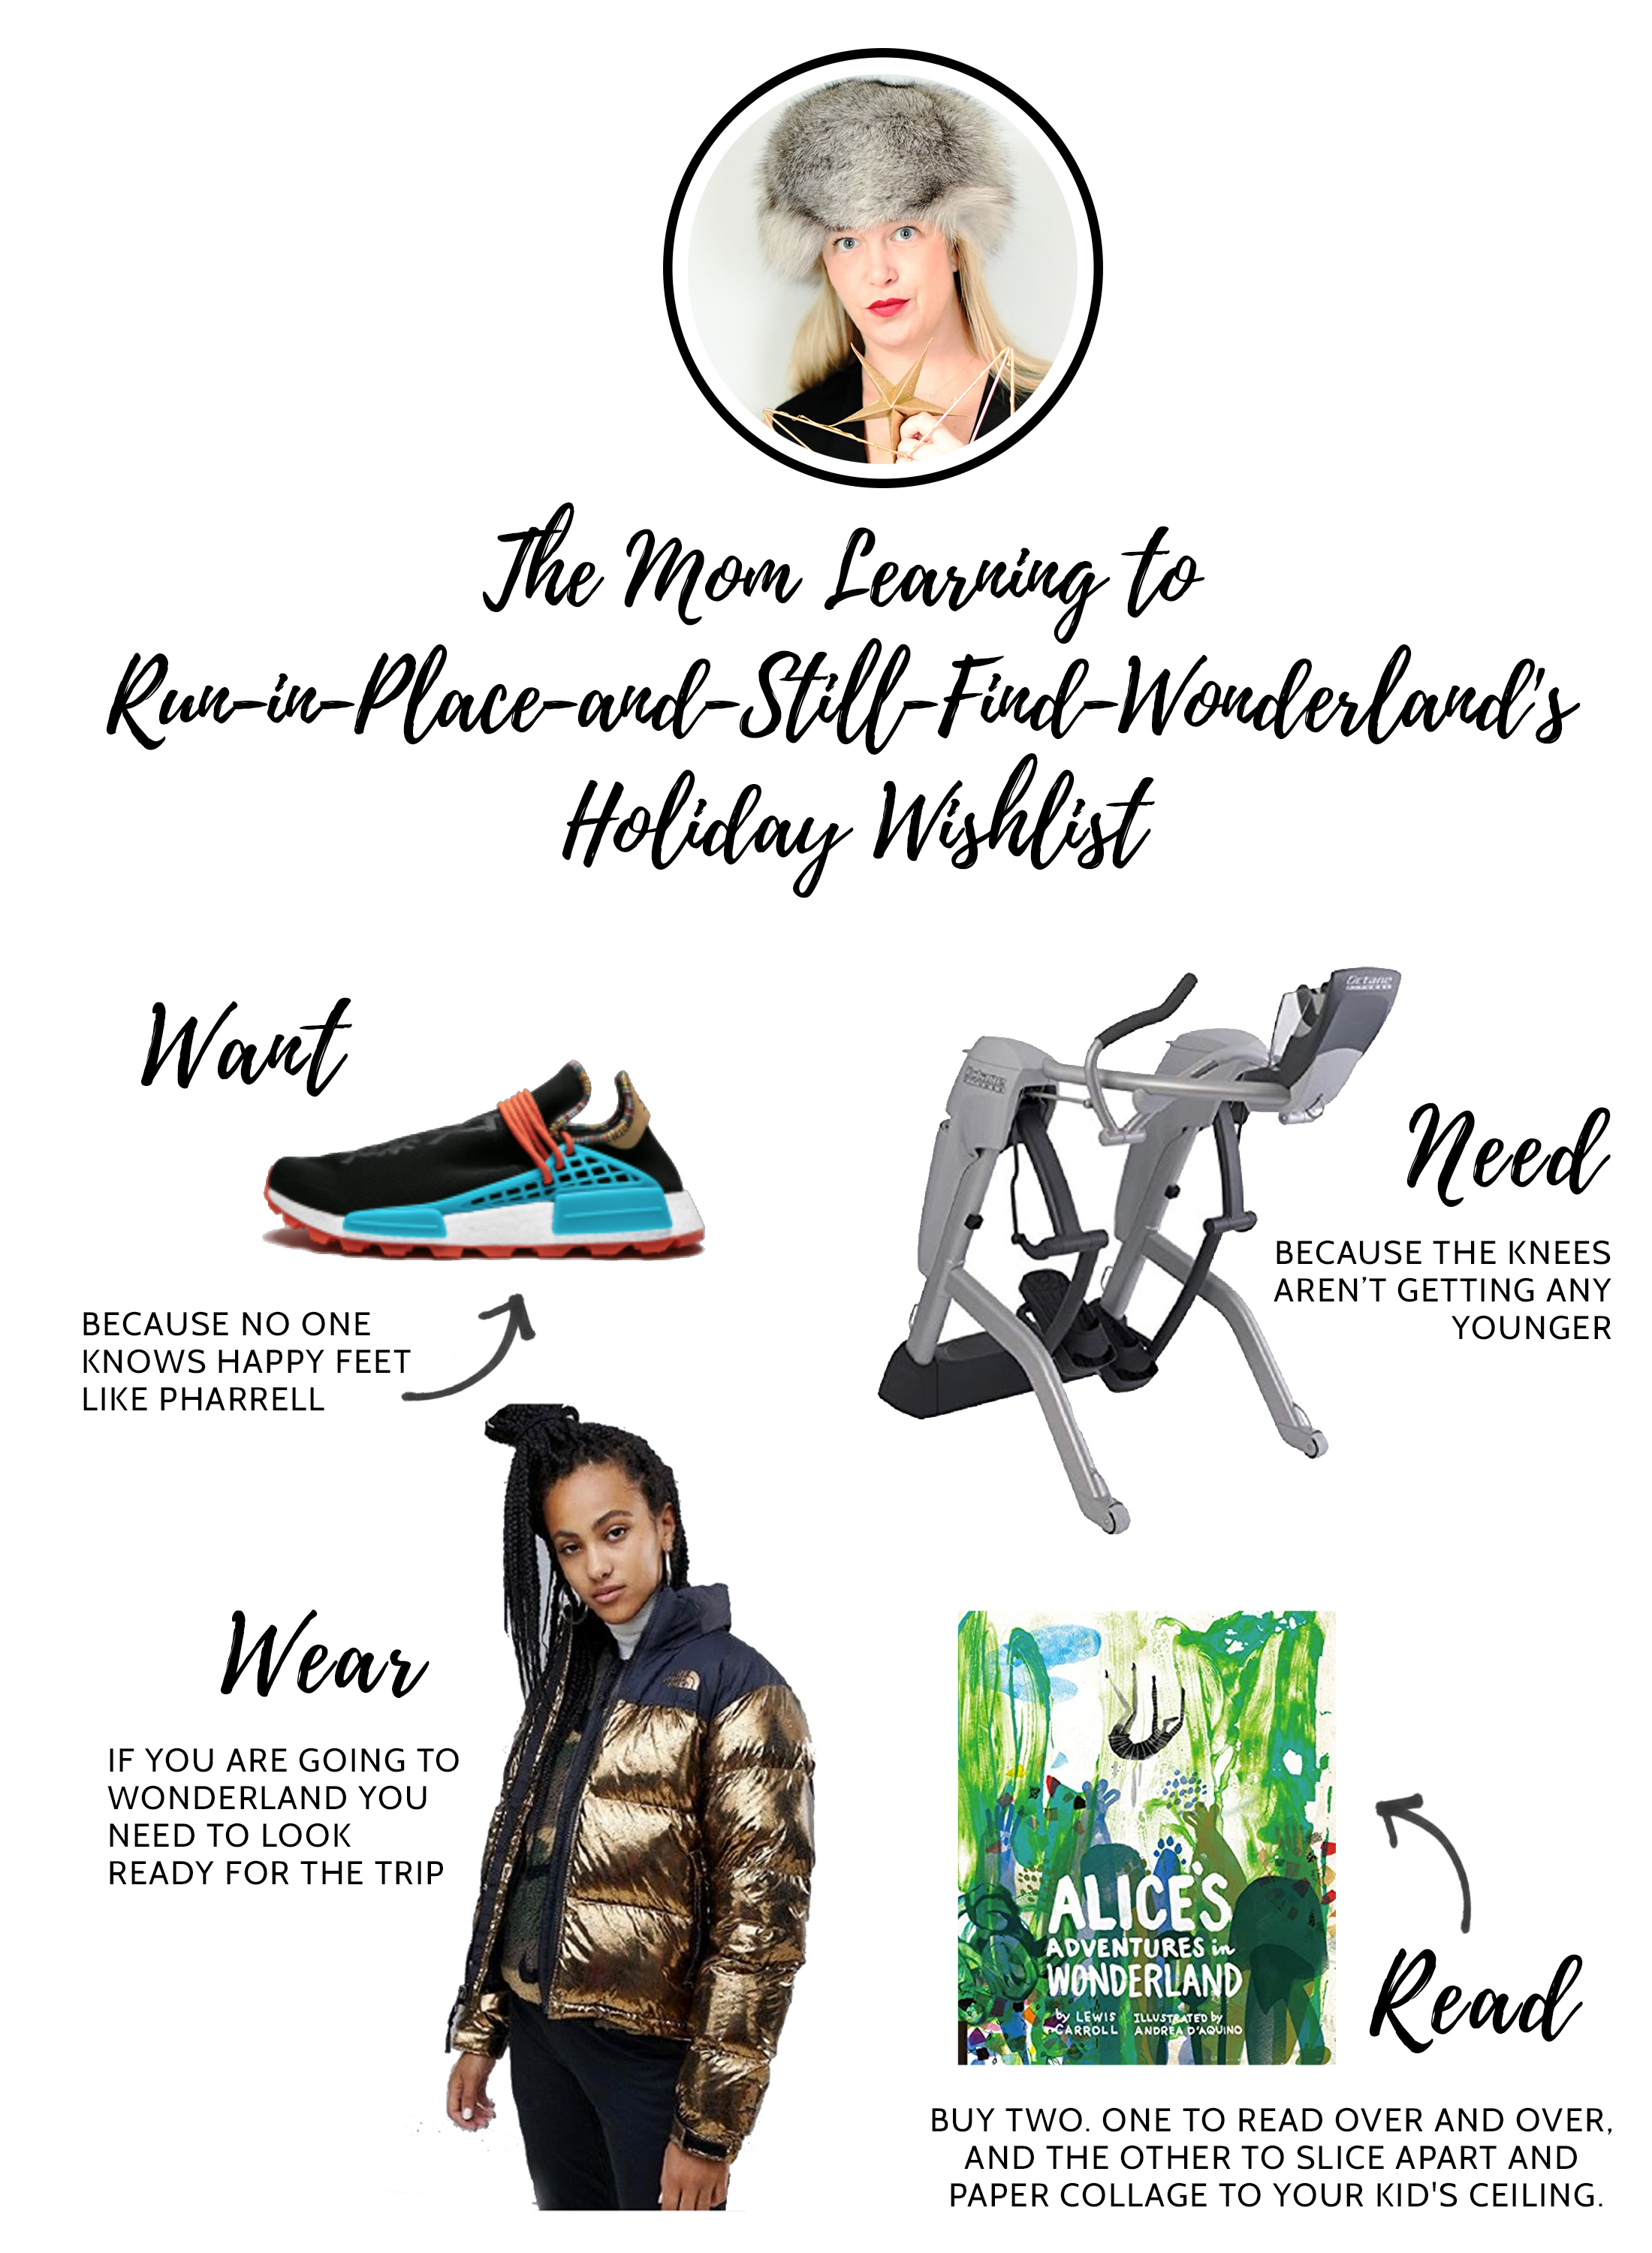 If Santa's not kissing Mommy, he better leave her something stunning under the tree. See what's on the editors' Want, Need, Wear, Read wishlists.